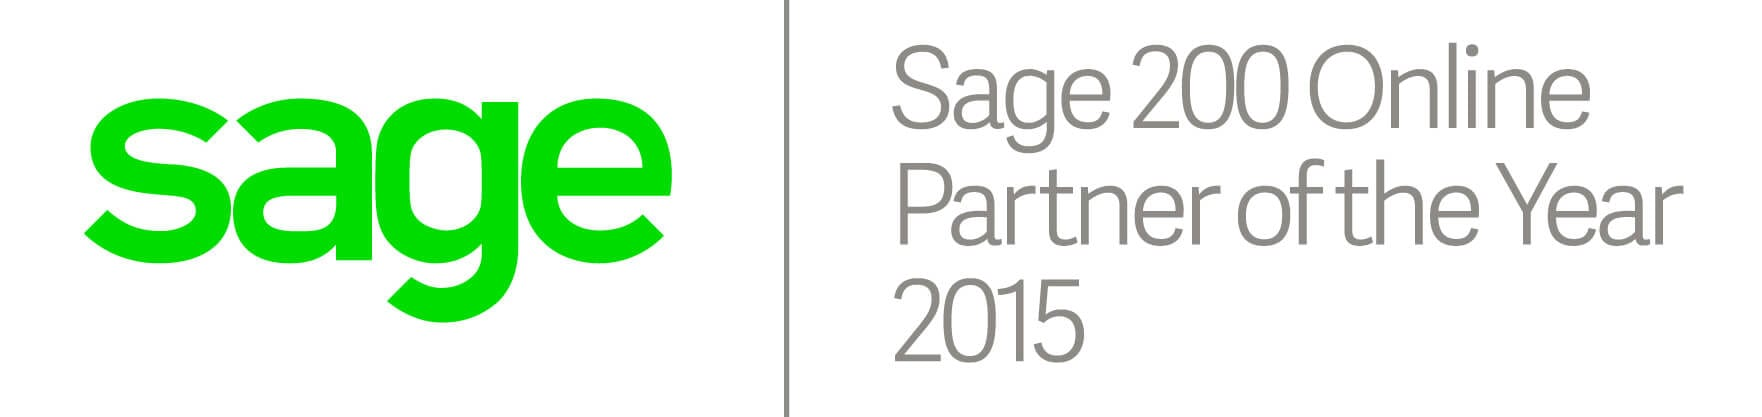 Sage 200 Online Partner of the Year 2015